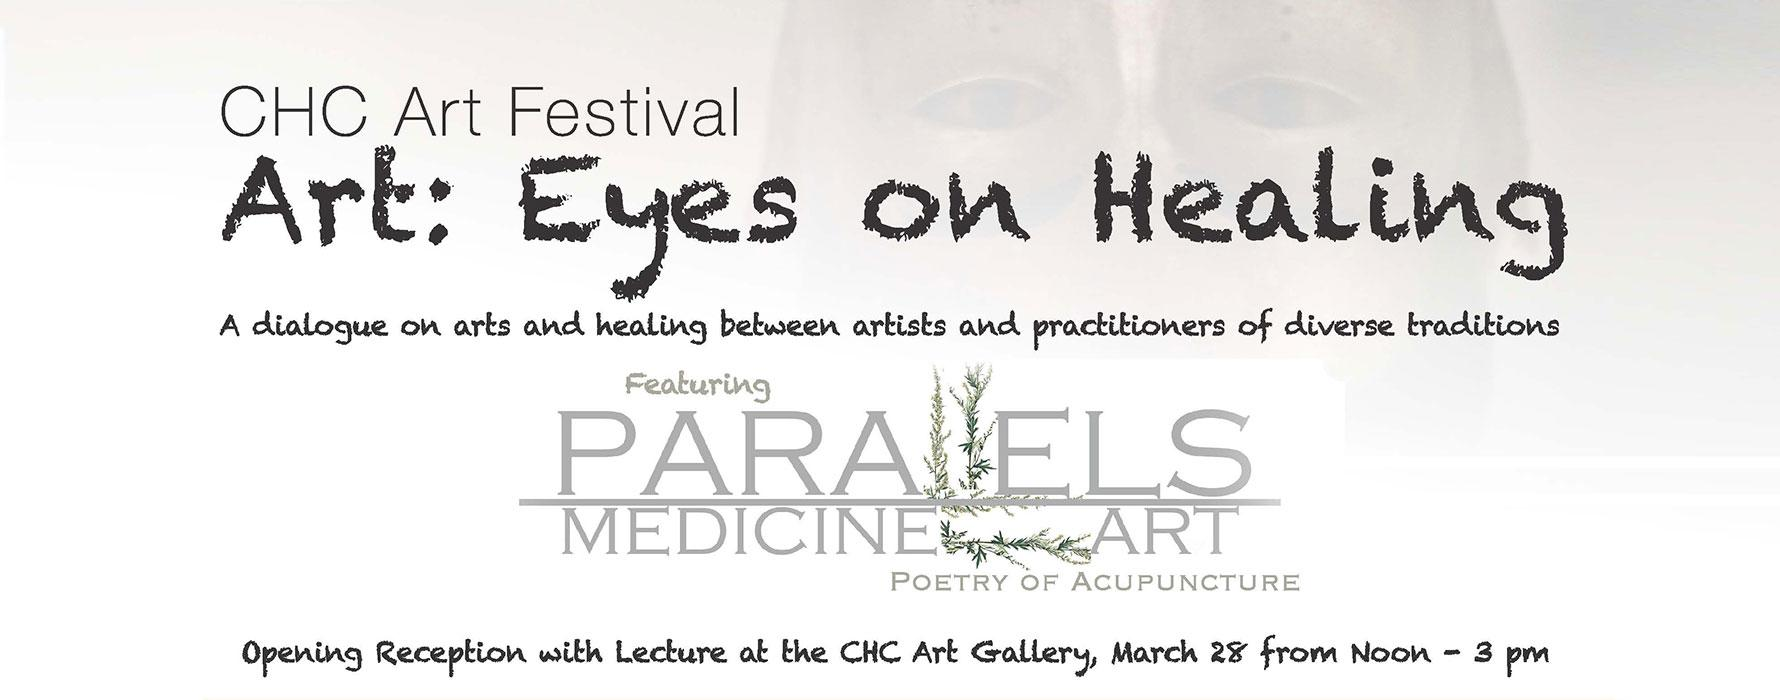 CHC Art Festival - Art: Eyes on Healing. A dialogue on arts and healing between artists and practitioners of diverse traditions. Featuring Parallels Medicine Art: Poetry of Acupuncture. Opening Reception with Lecture at the CHC Art Gallery, March 28 from Noon - 3 p.m.